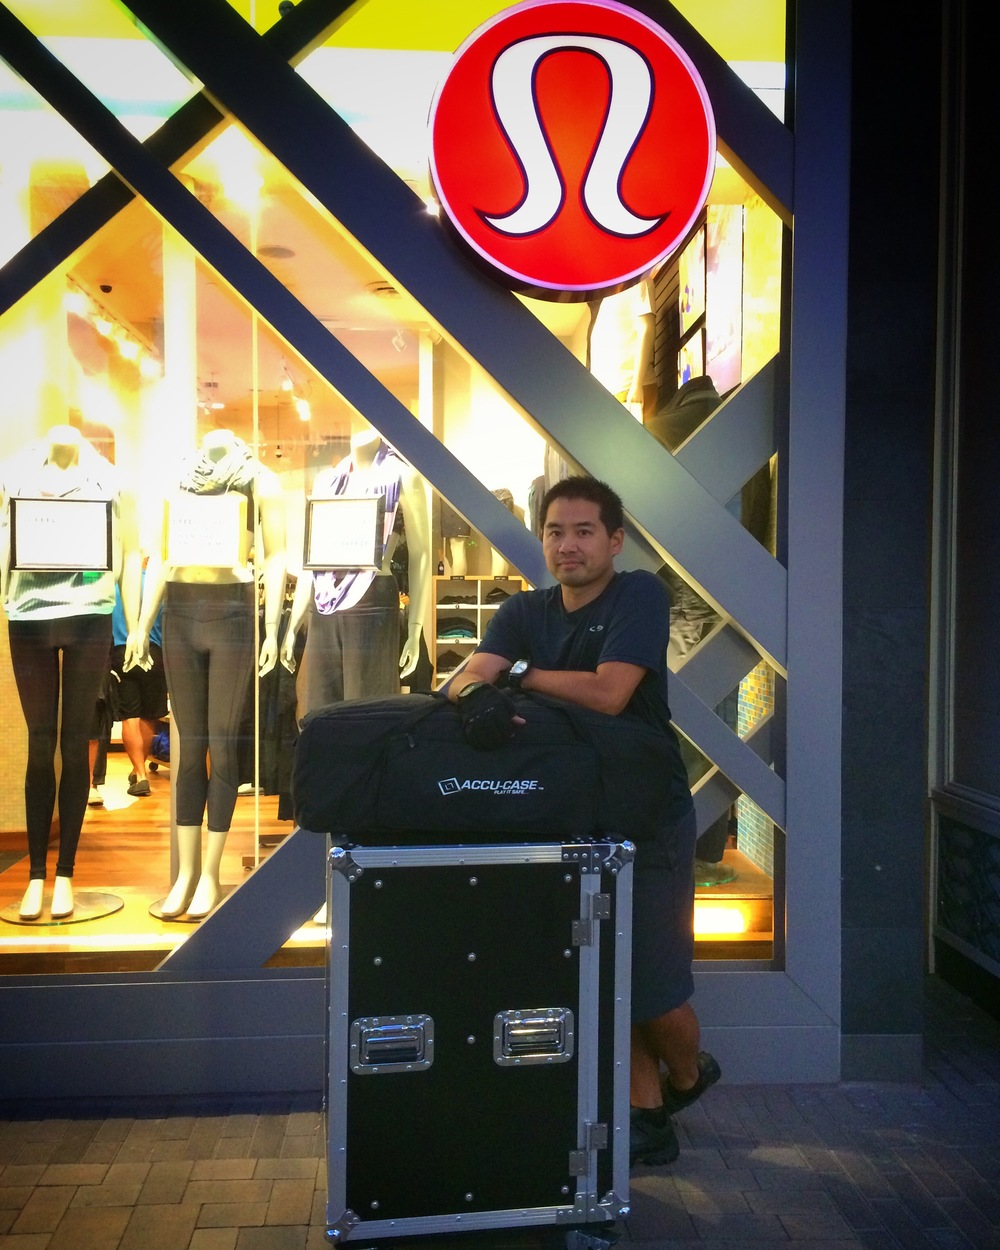 Rolling in for the gig at Lululemon Fashion Valley.